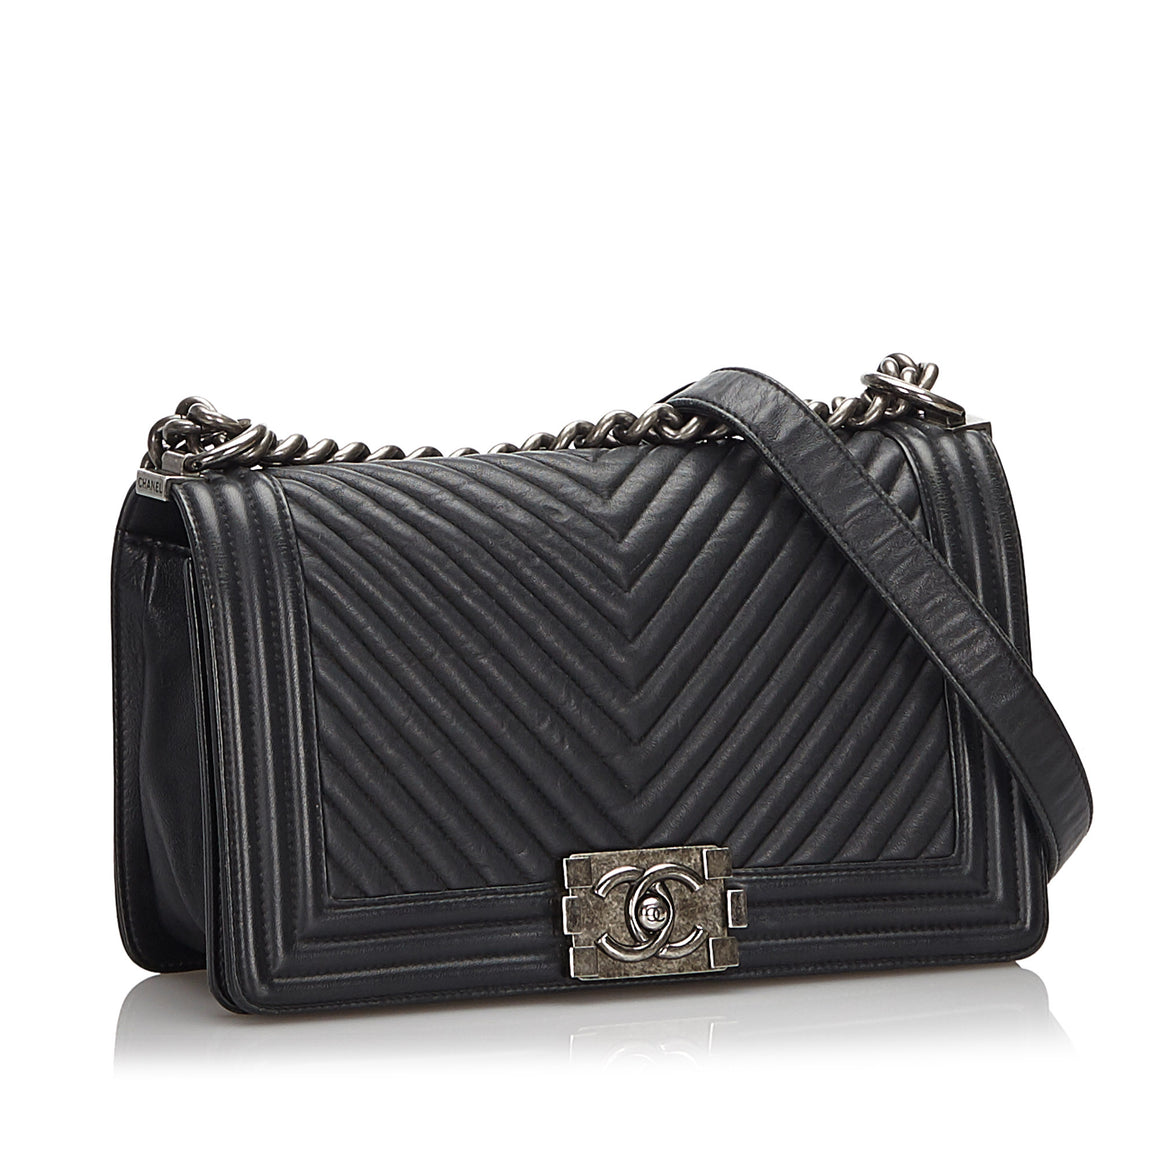 Chanel Chevron Leather Medium Boy Flap Bag